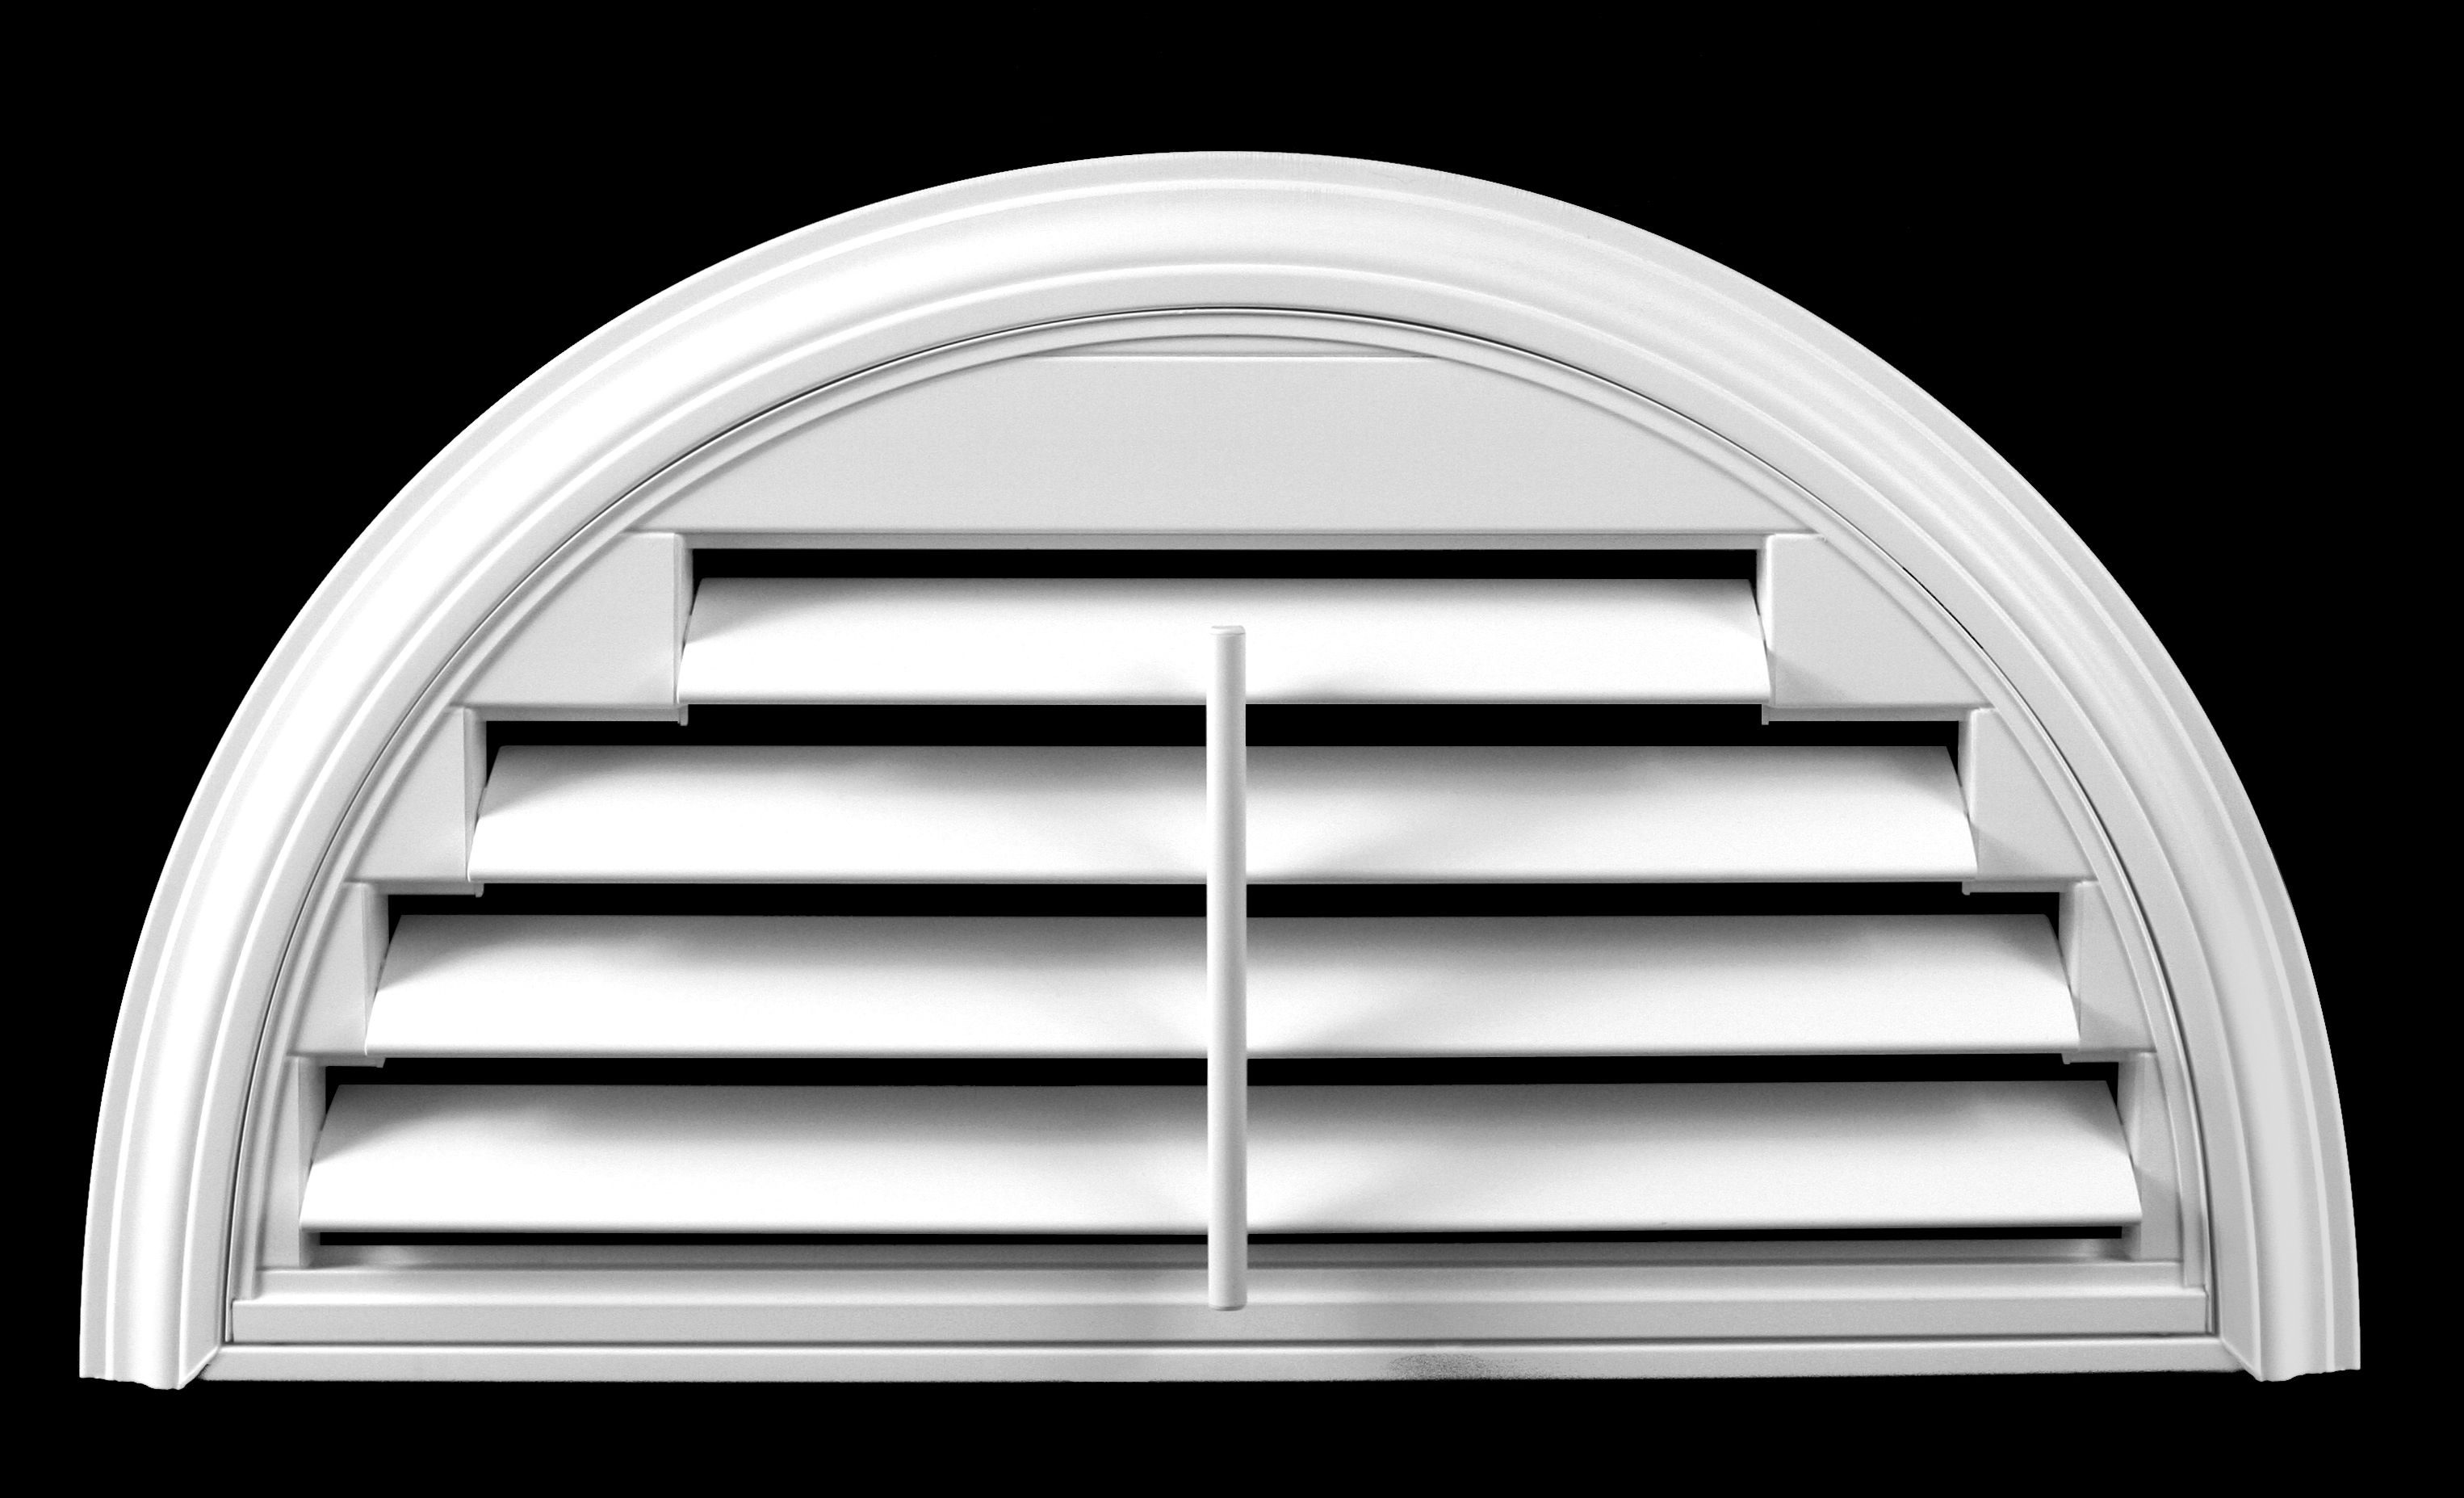 Shades For Semi Circle Window Google Search Blinds For Windows